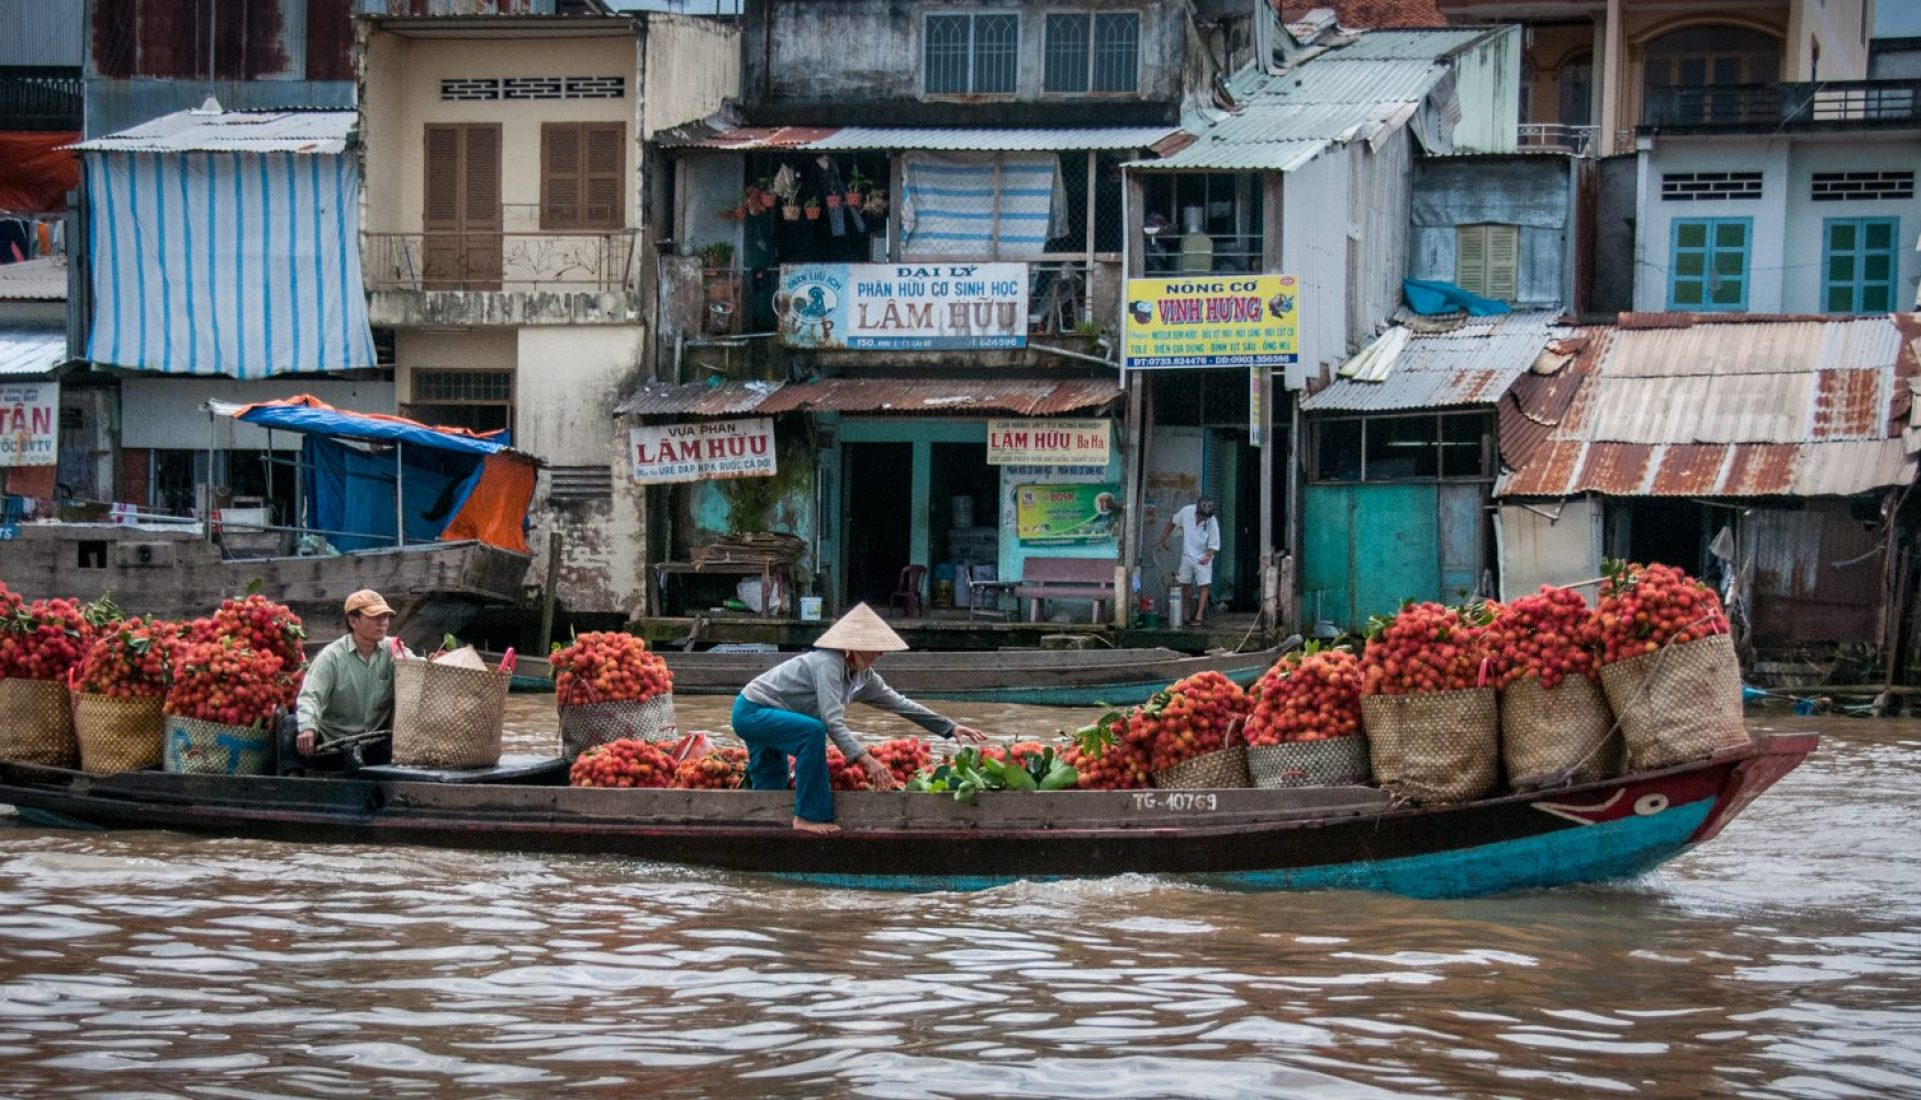 The Mekong, River of Life – a Photo Essay